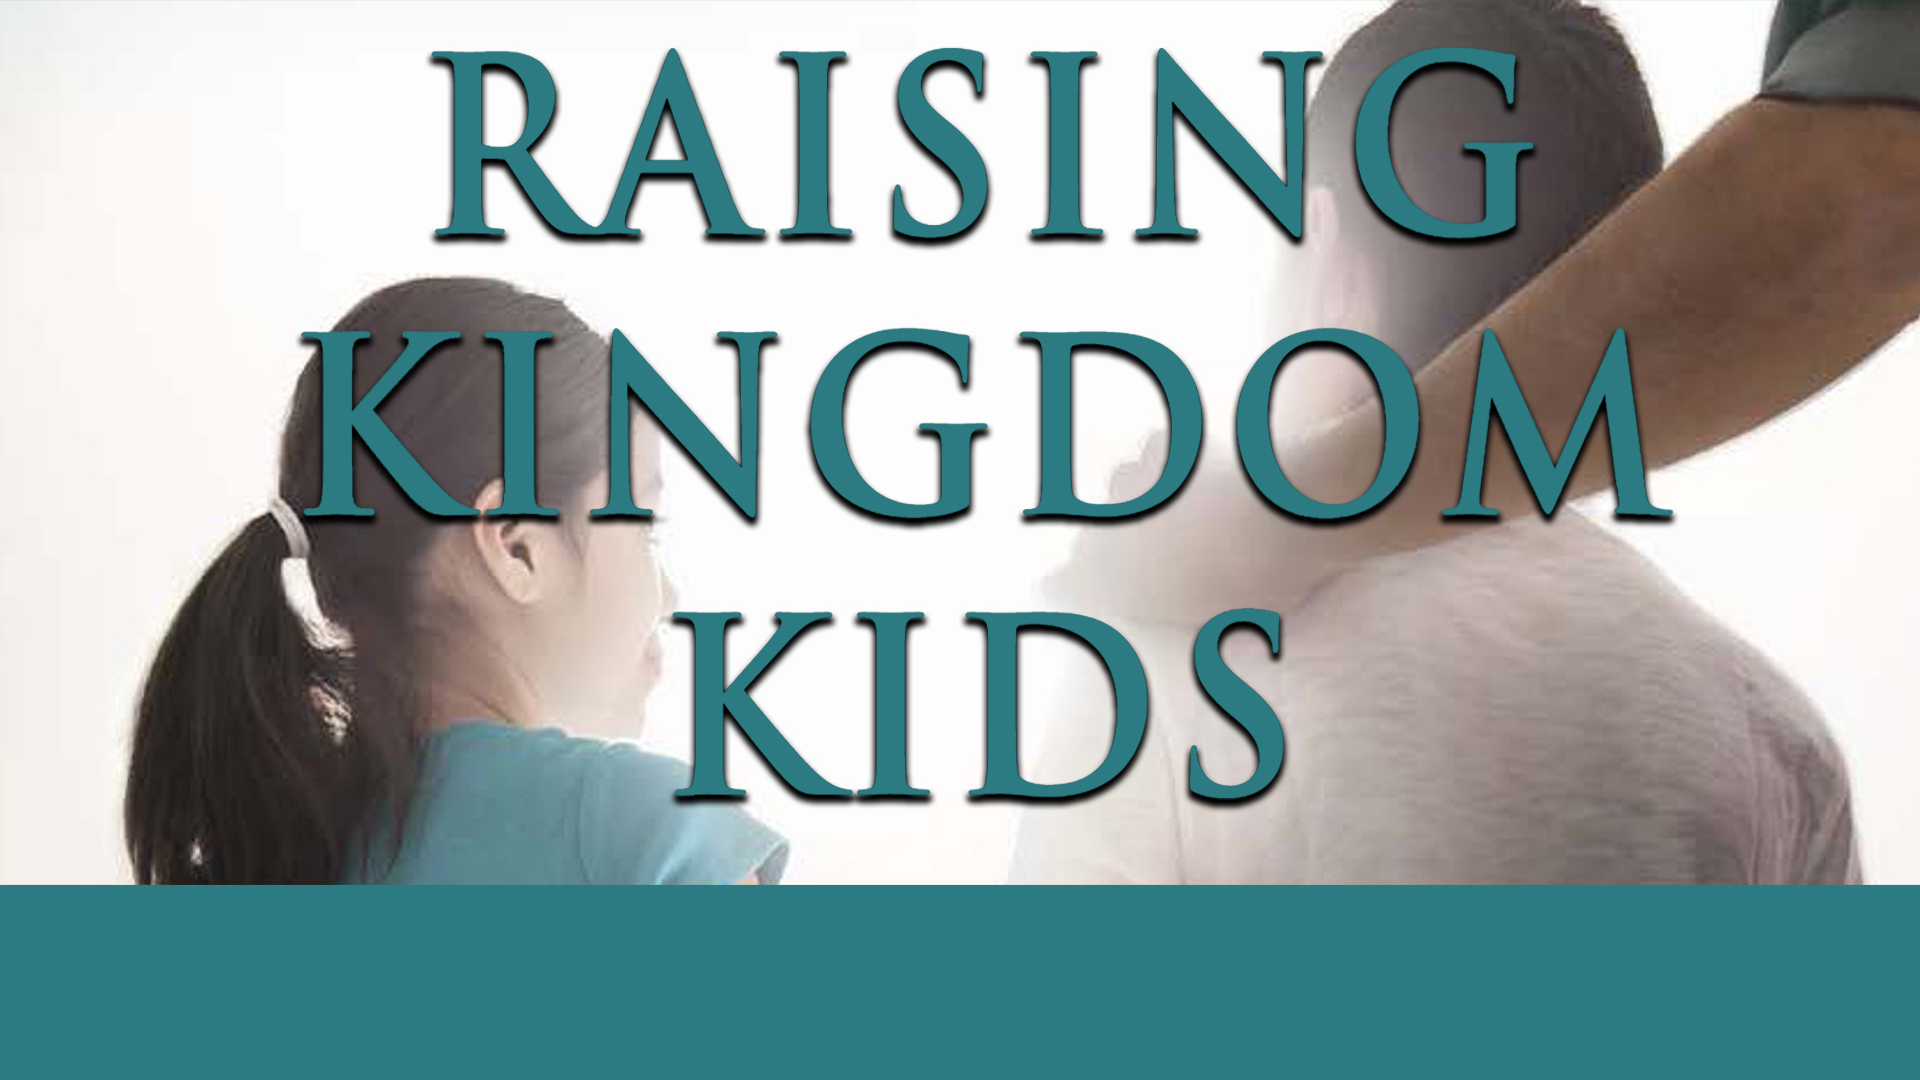 Raising Kids Website image